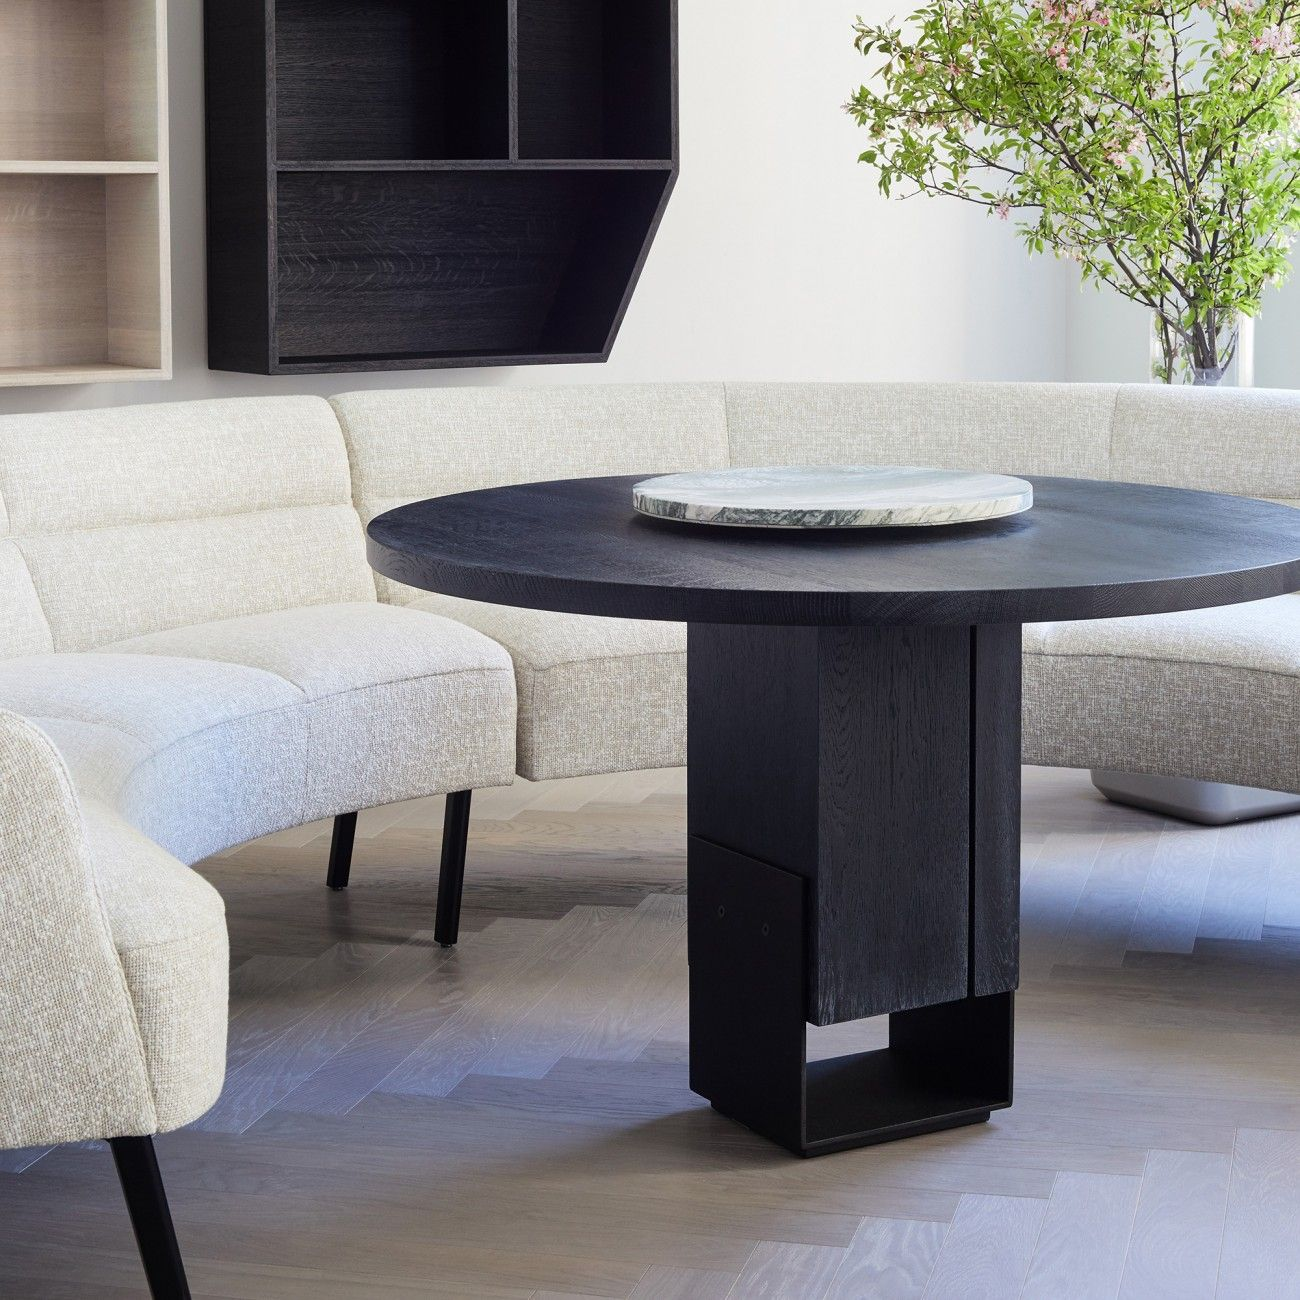 Kitale Round Dining Tables Catalogue West